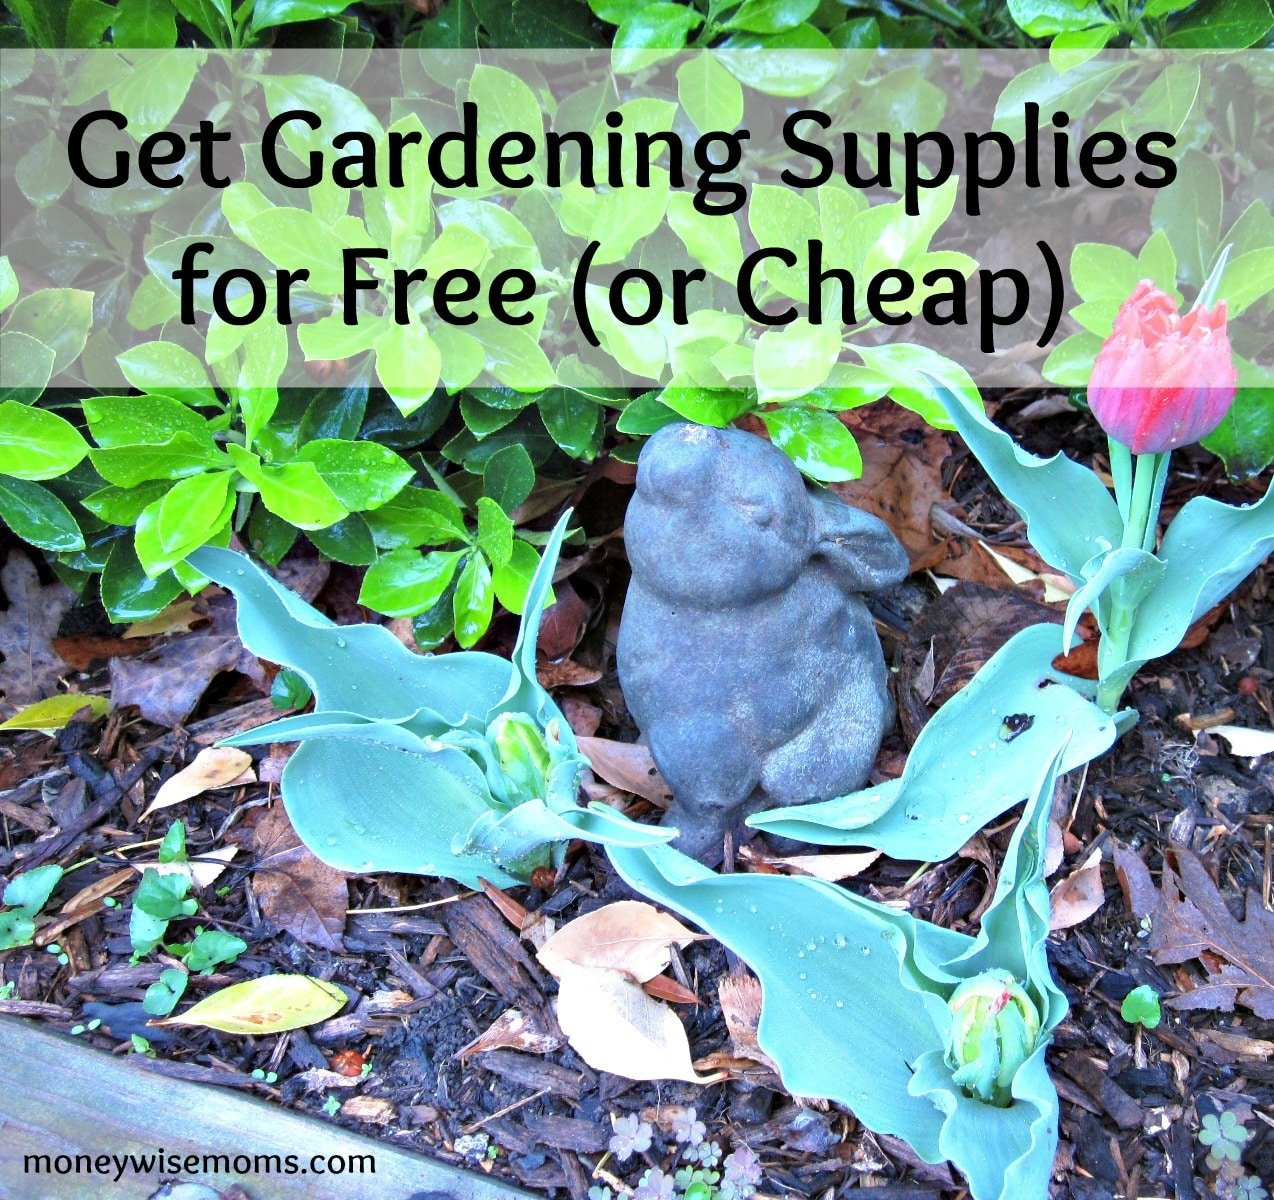 Get Gardening Supplies for Free or Cheap Moneywise Moms